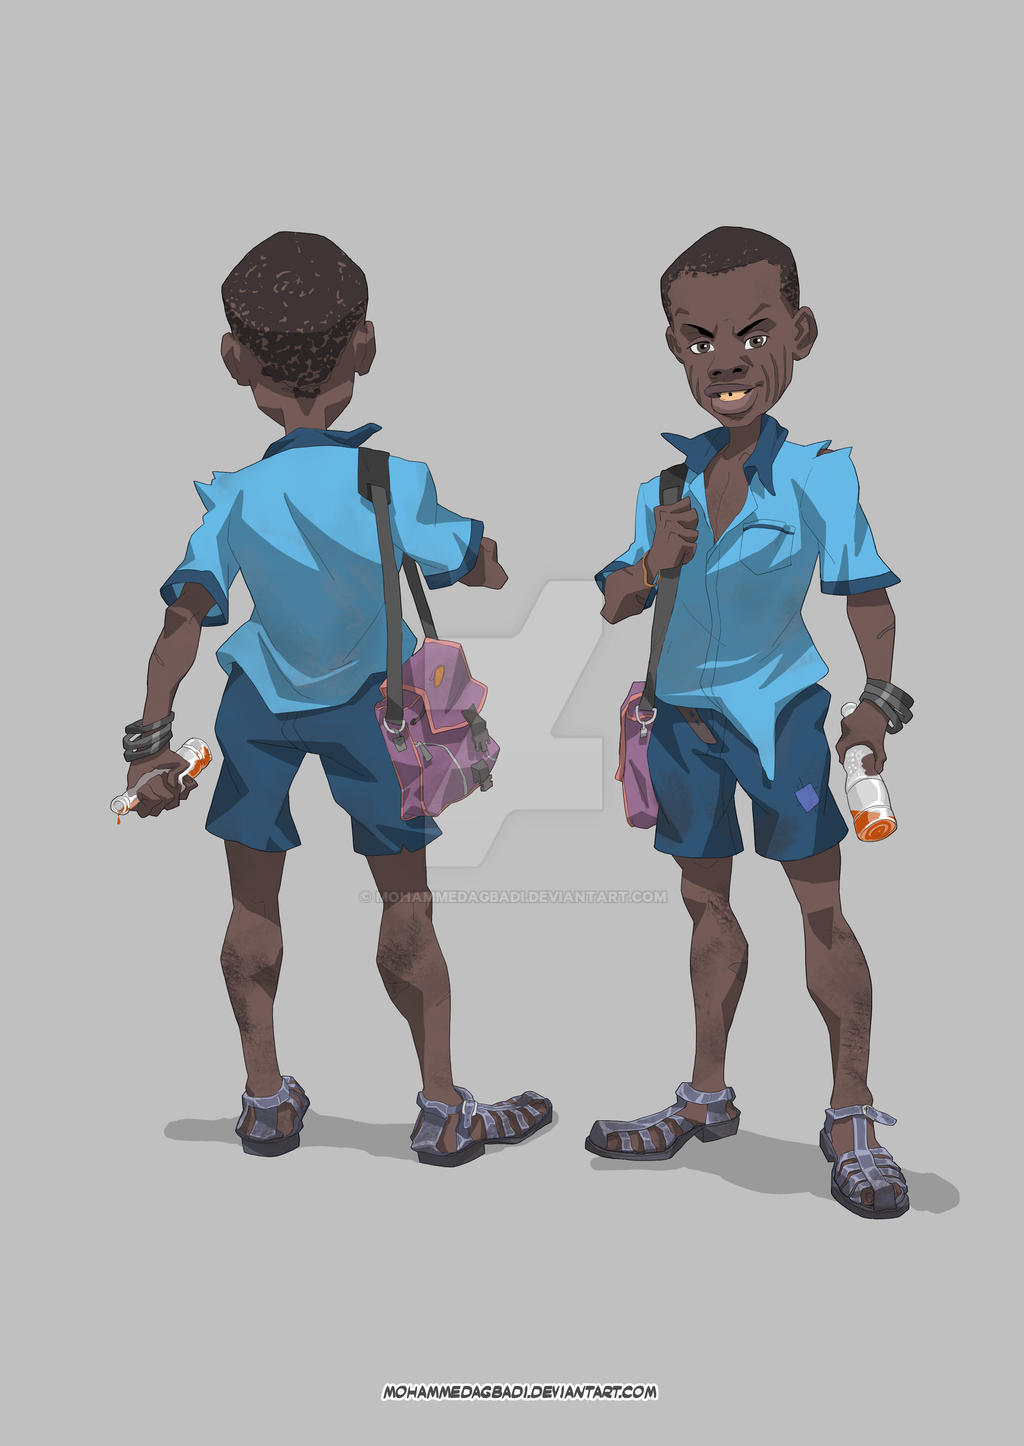 Character Design Little Boy : The yoruba boy character design by mohammedagbadi on